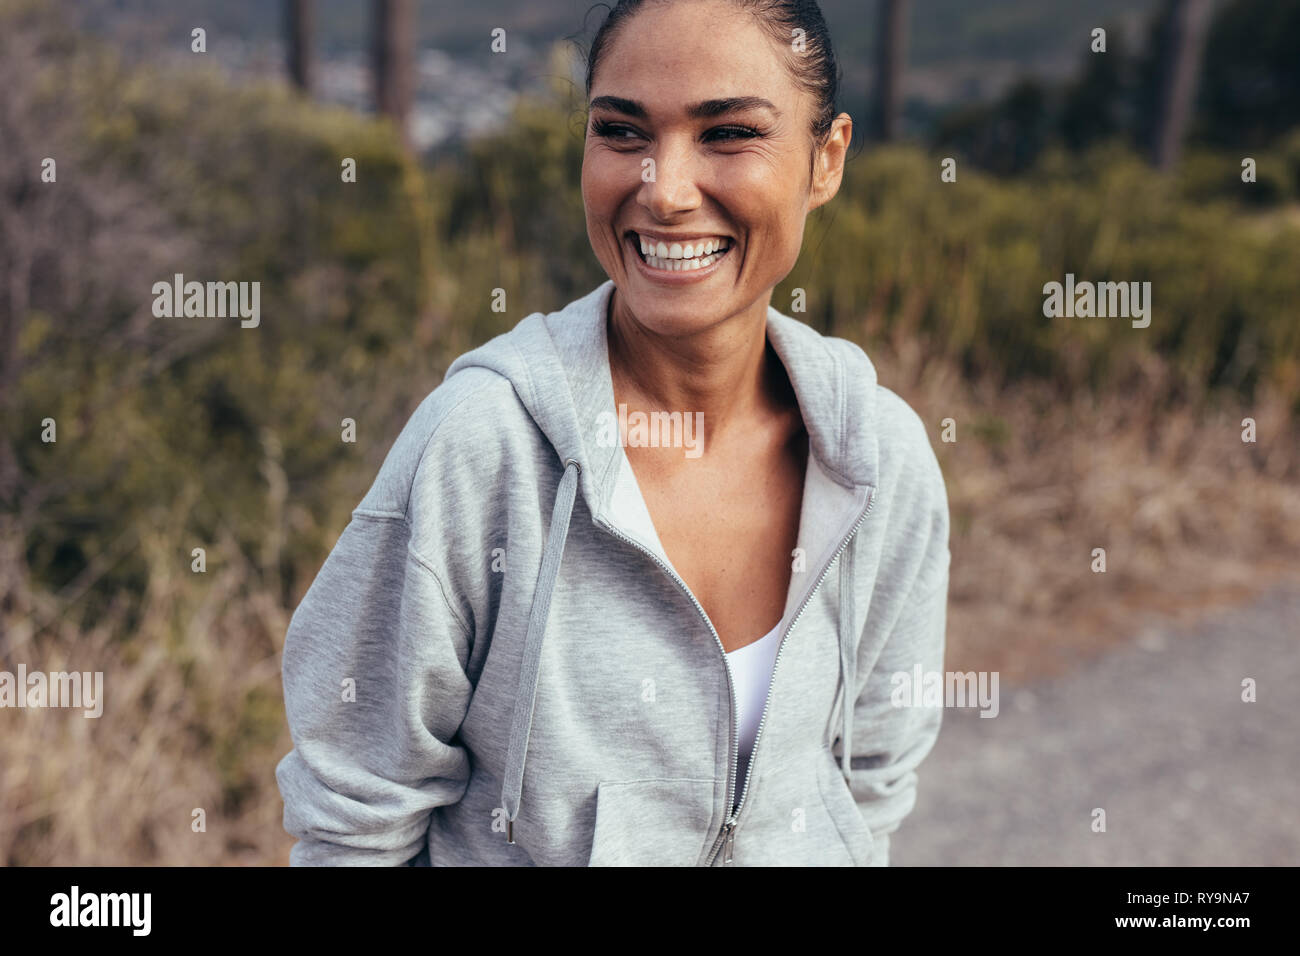 Cheerful female athlete standing outdoors during her morning fitness training. Woman in fitness wear taking a break after a morning run. Stock Photo